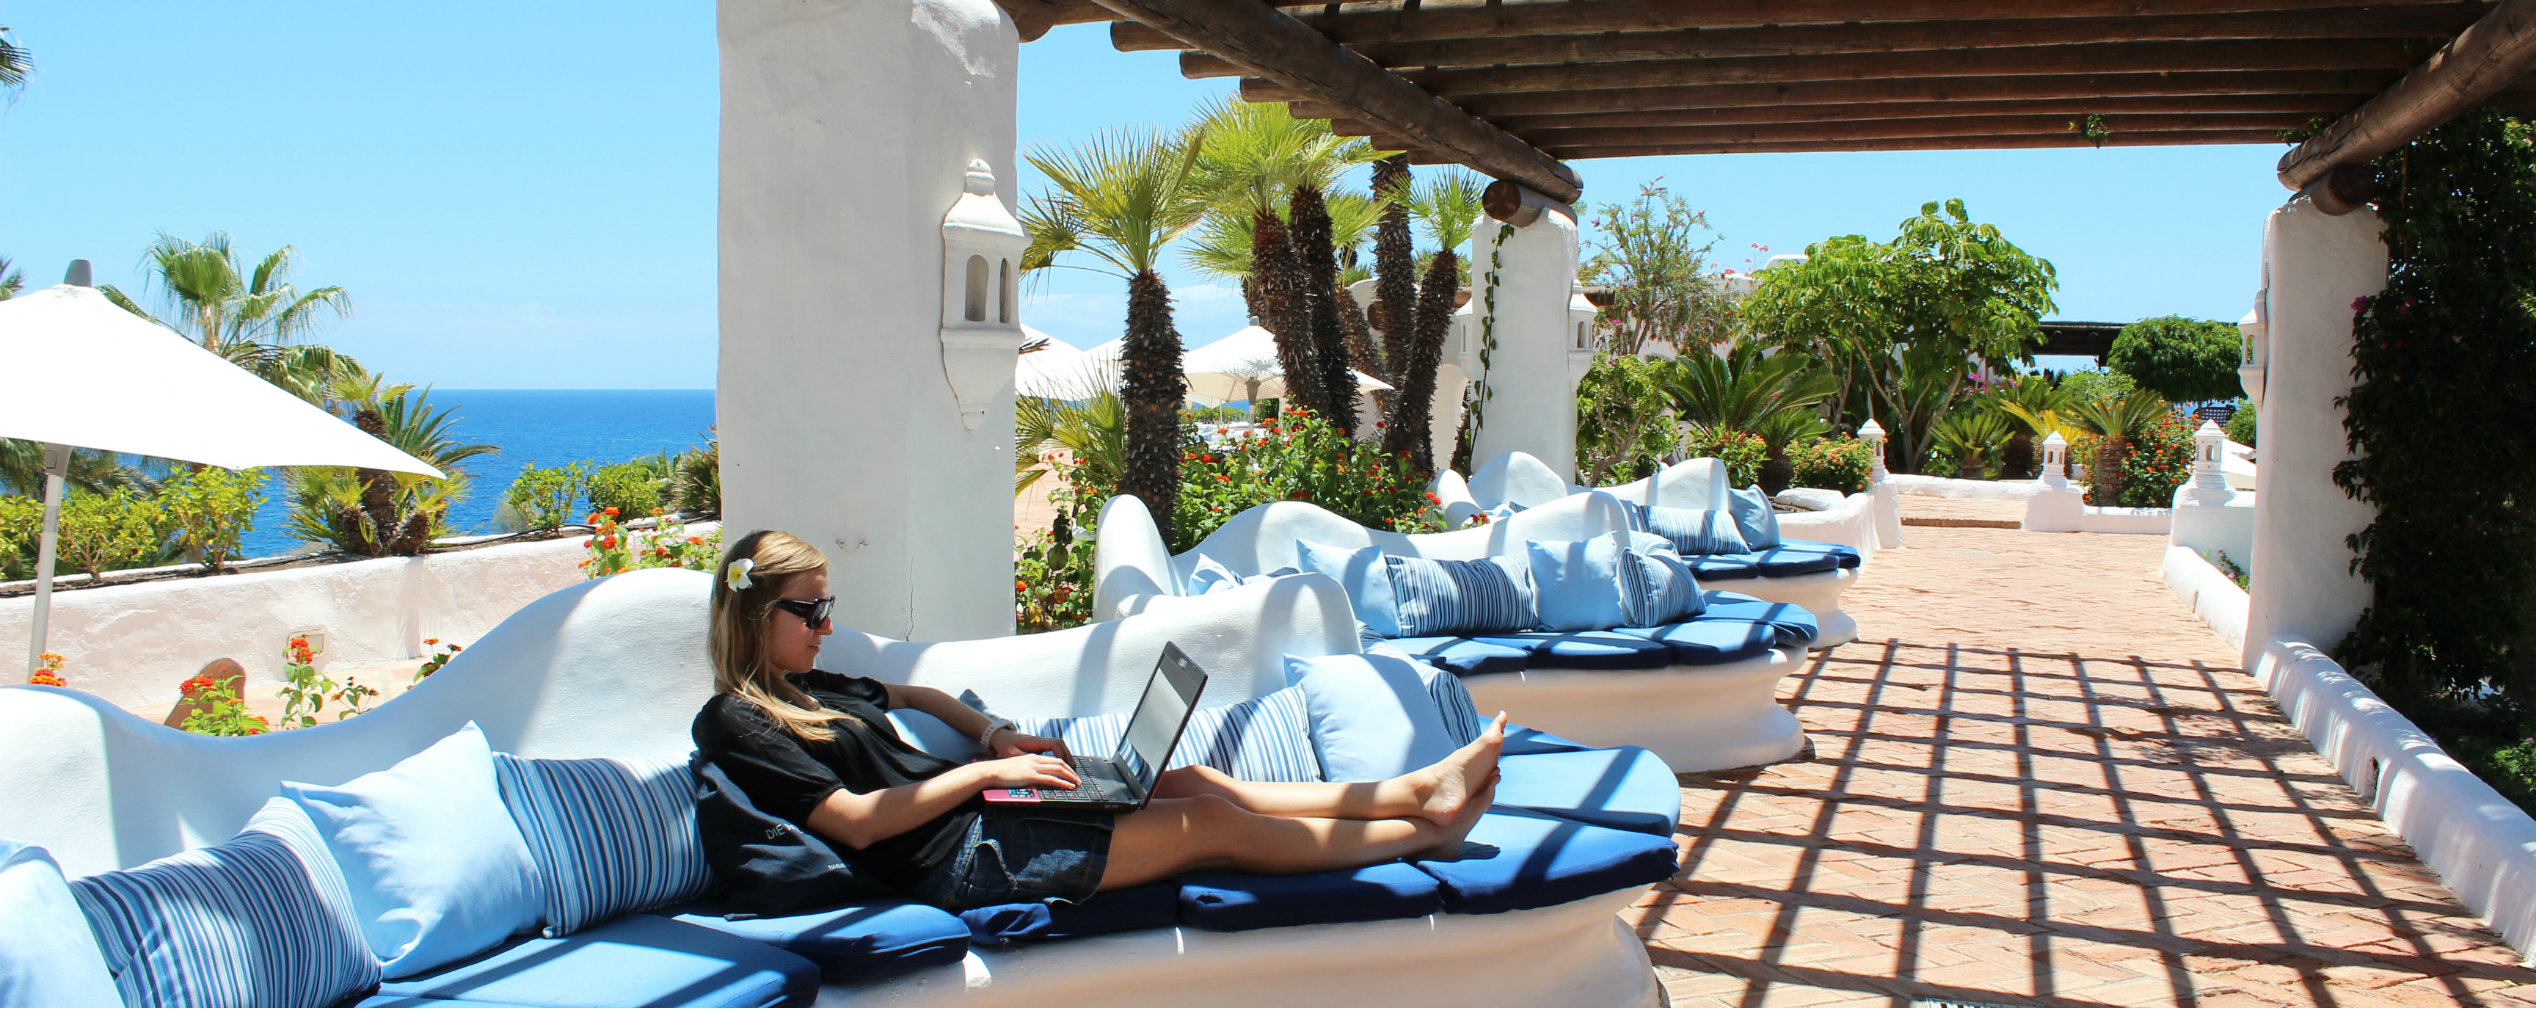 Jardin Tropical Experience the TUI BLUE paradise on Tenerife